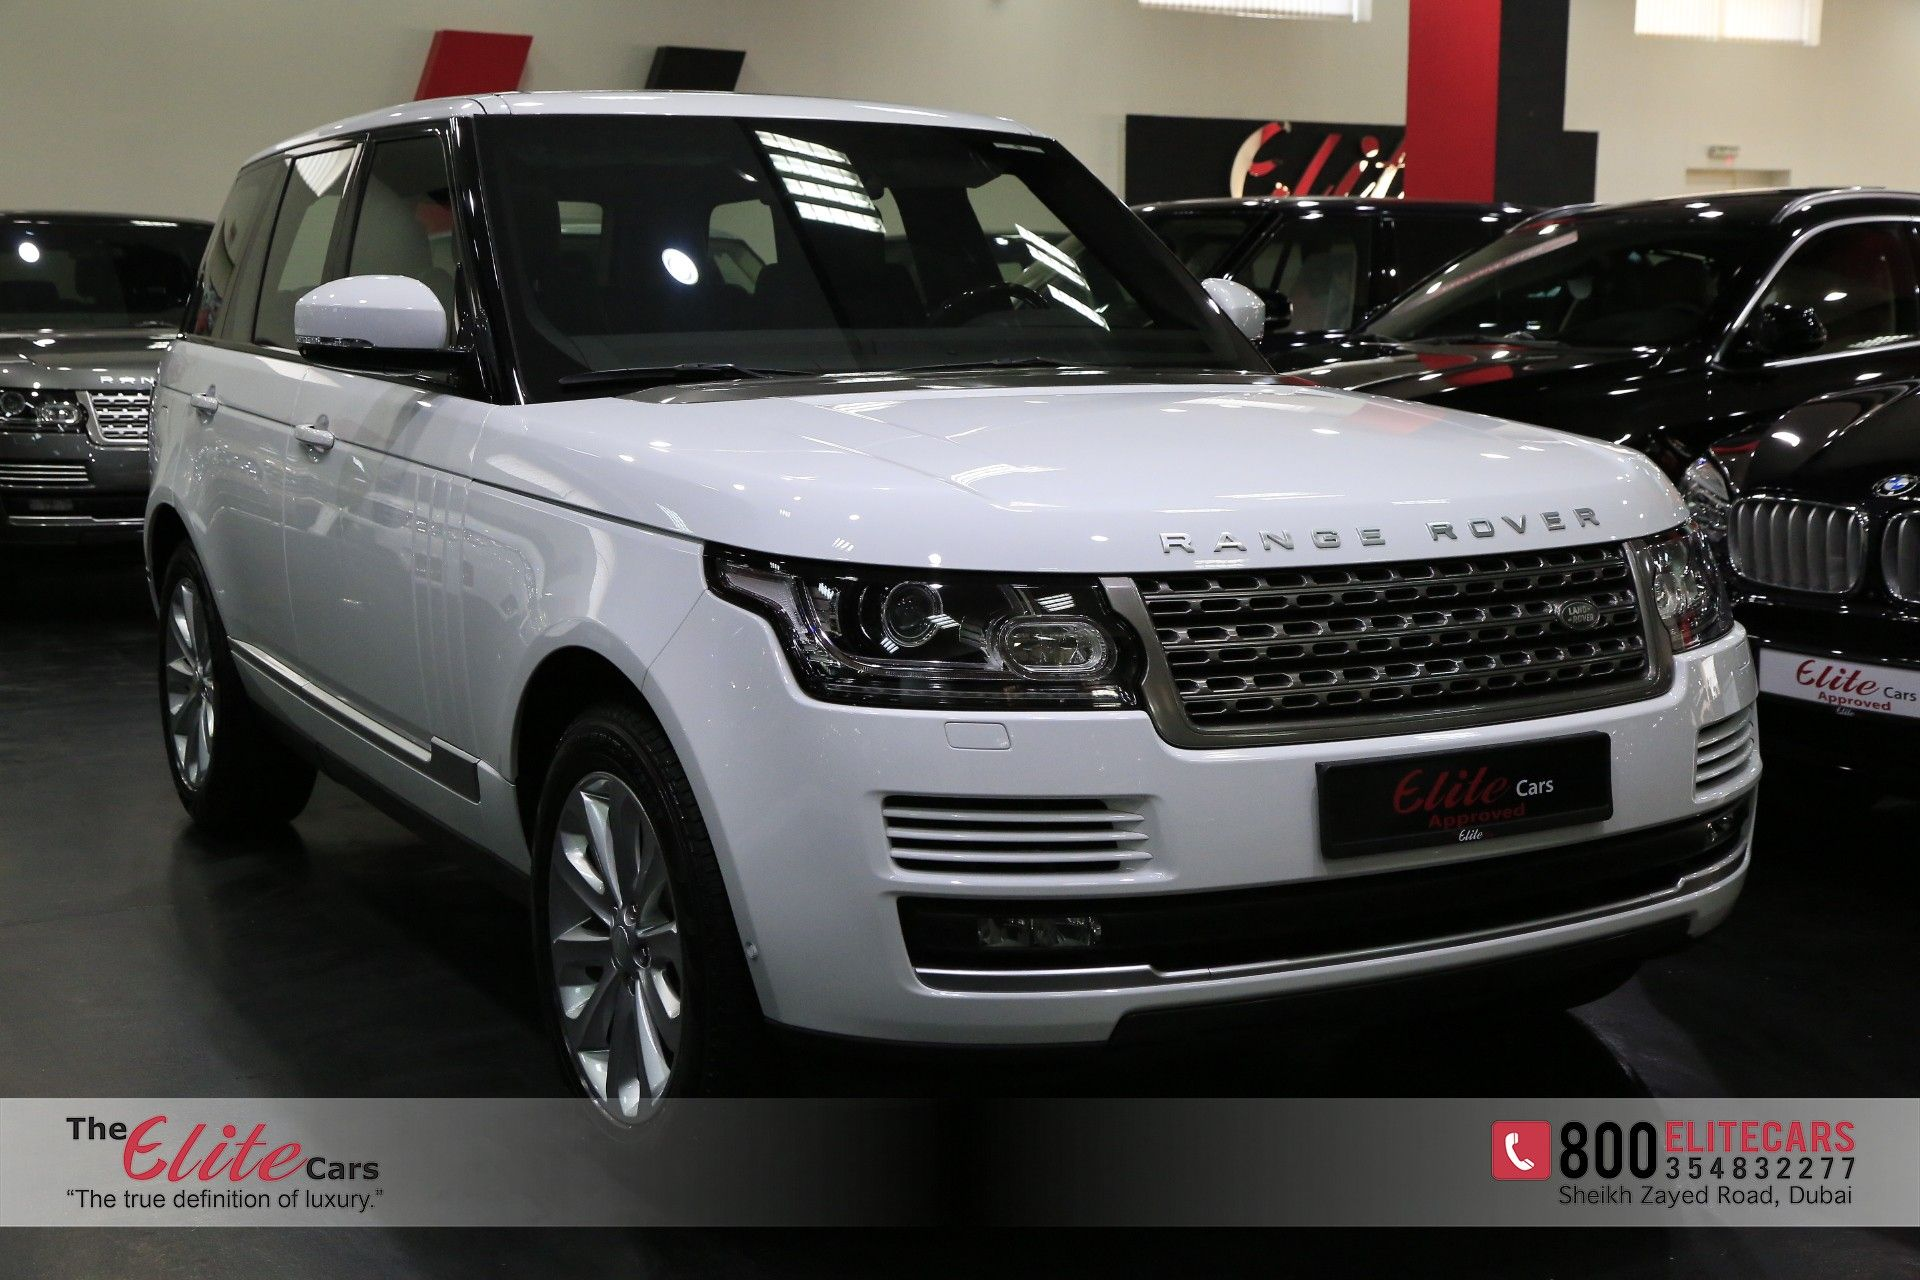 Range Rover Vogue Hse 2015 for Sale in Dubai, AED 379,000